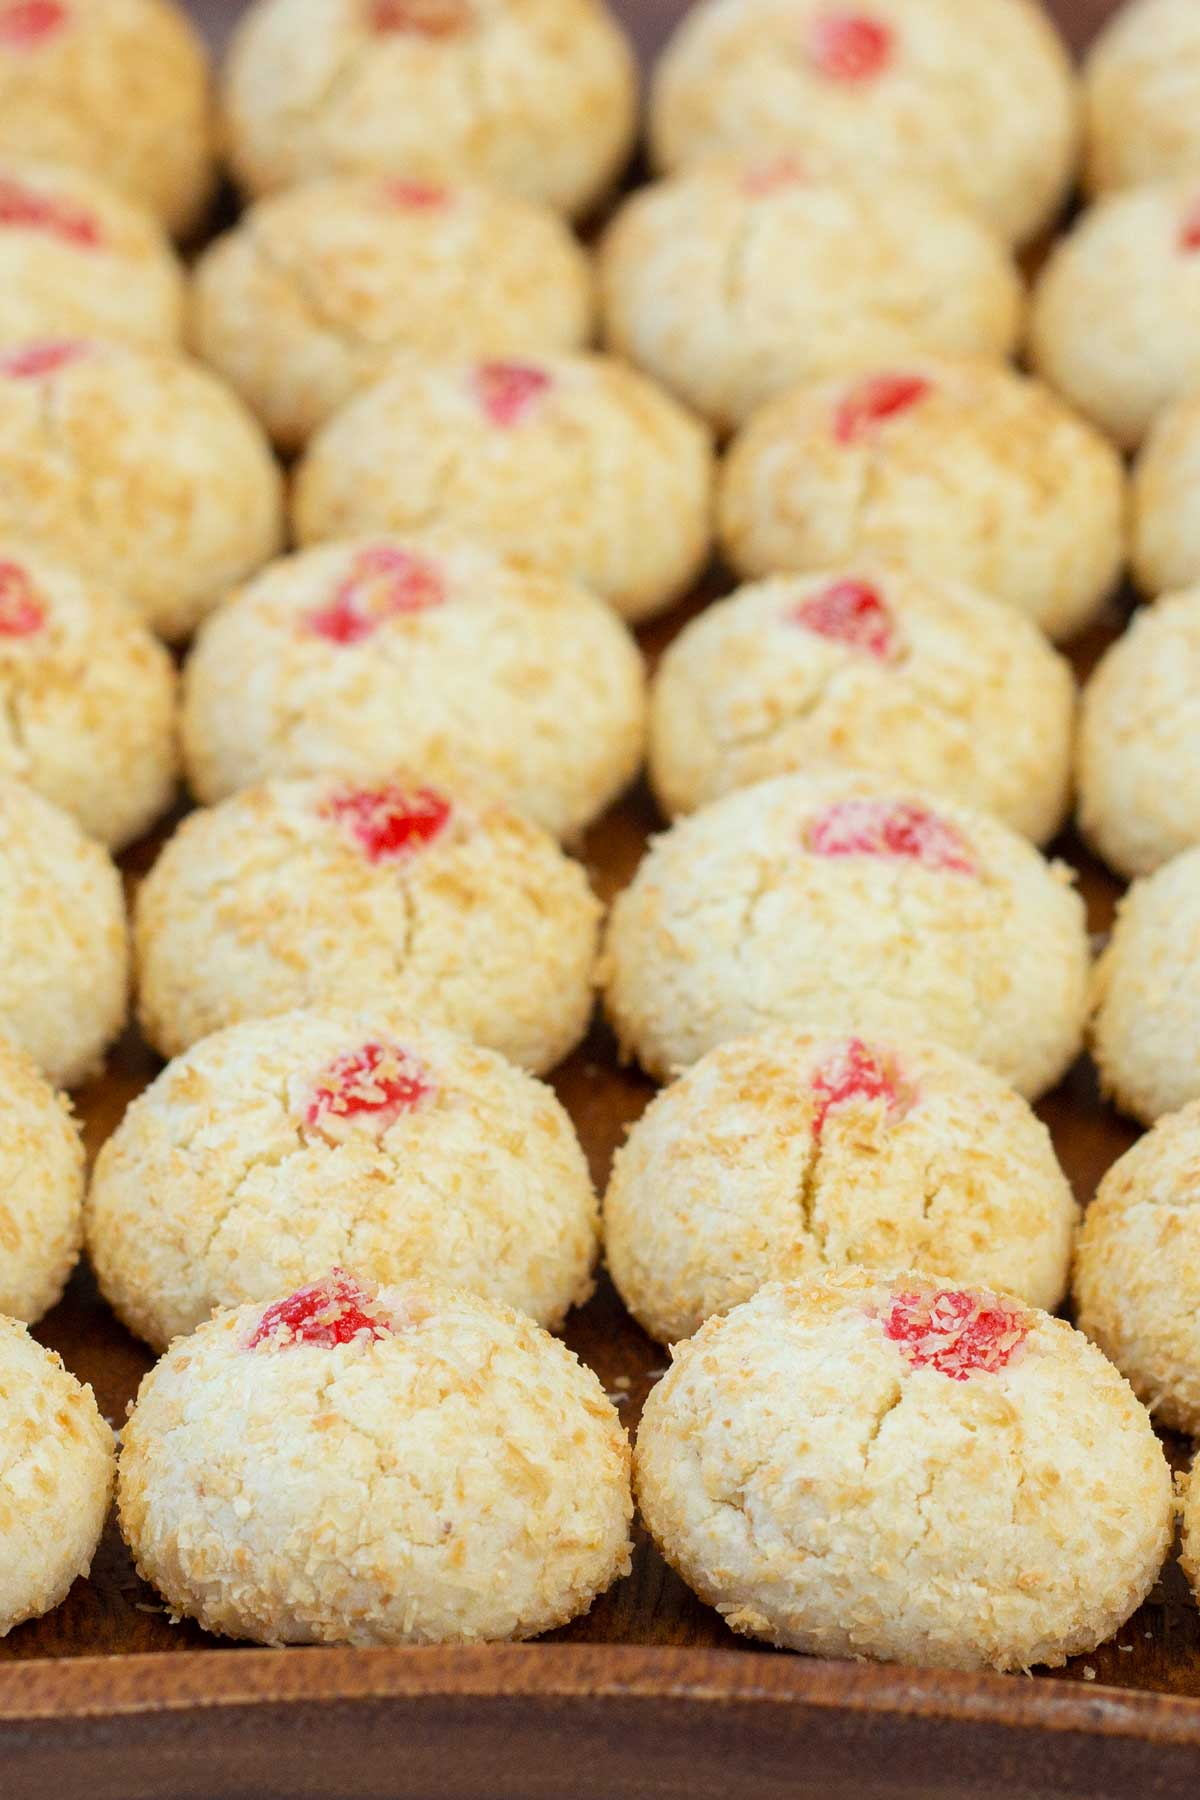 Coconut cookies on a tray